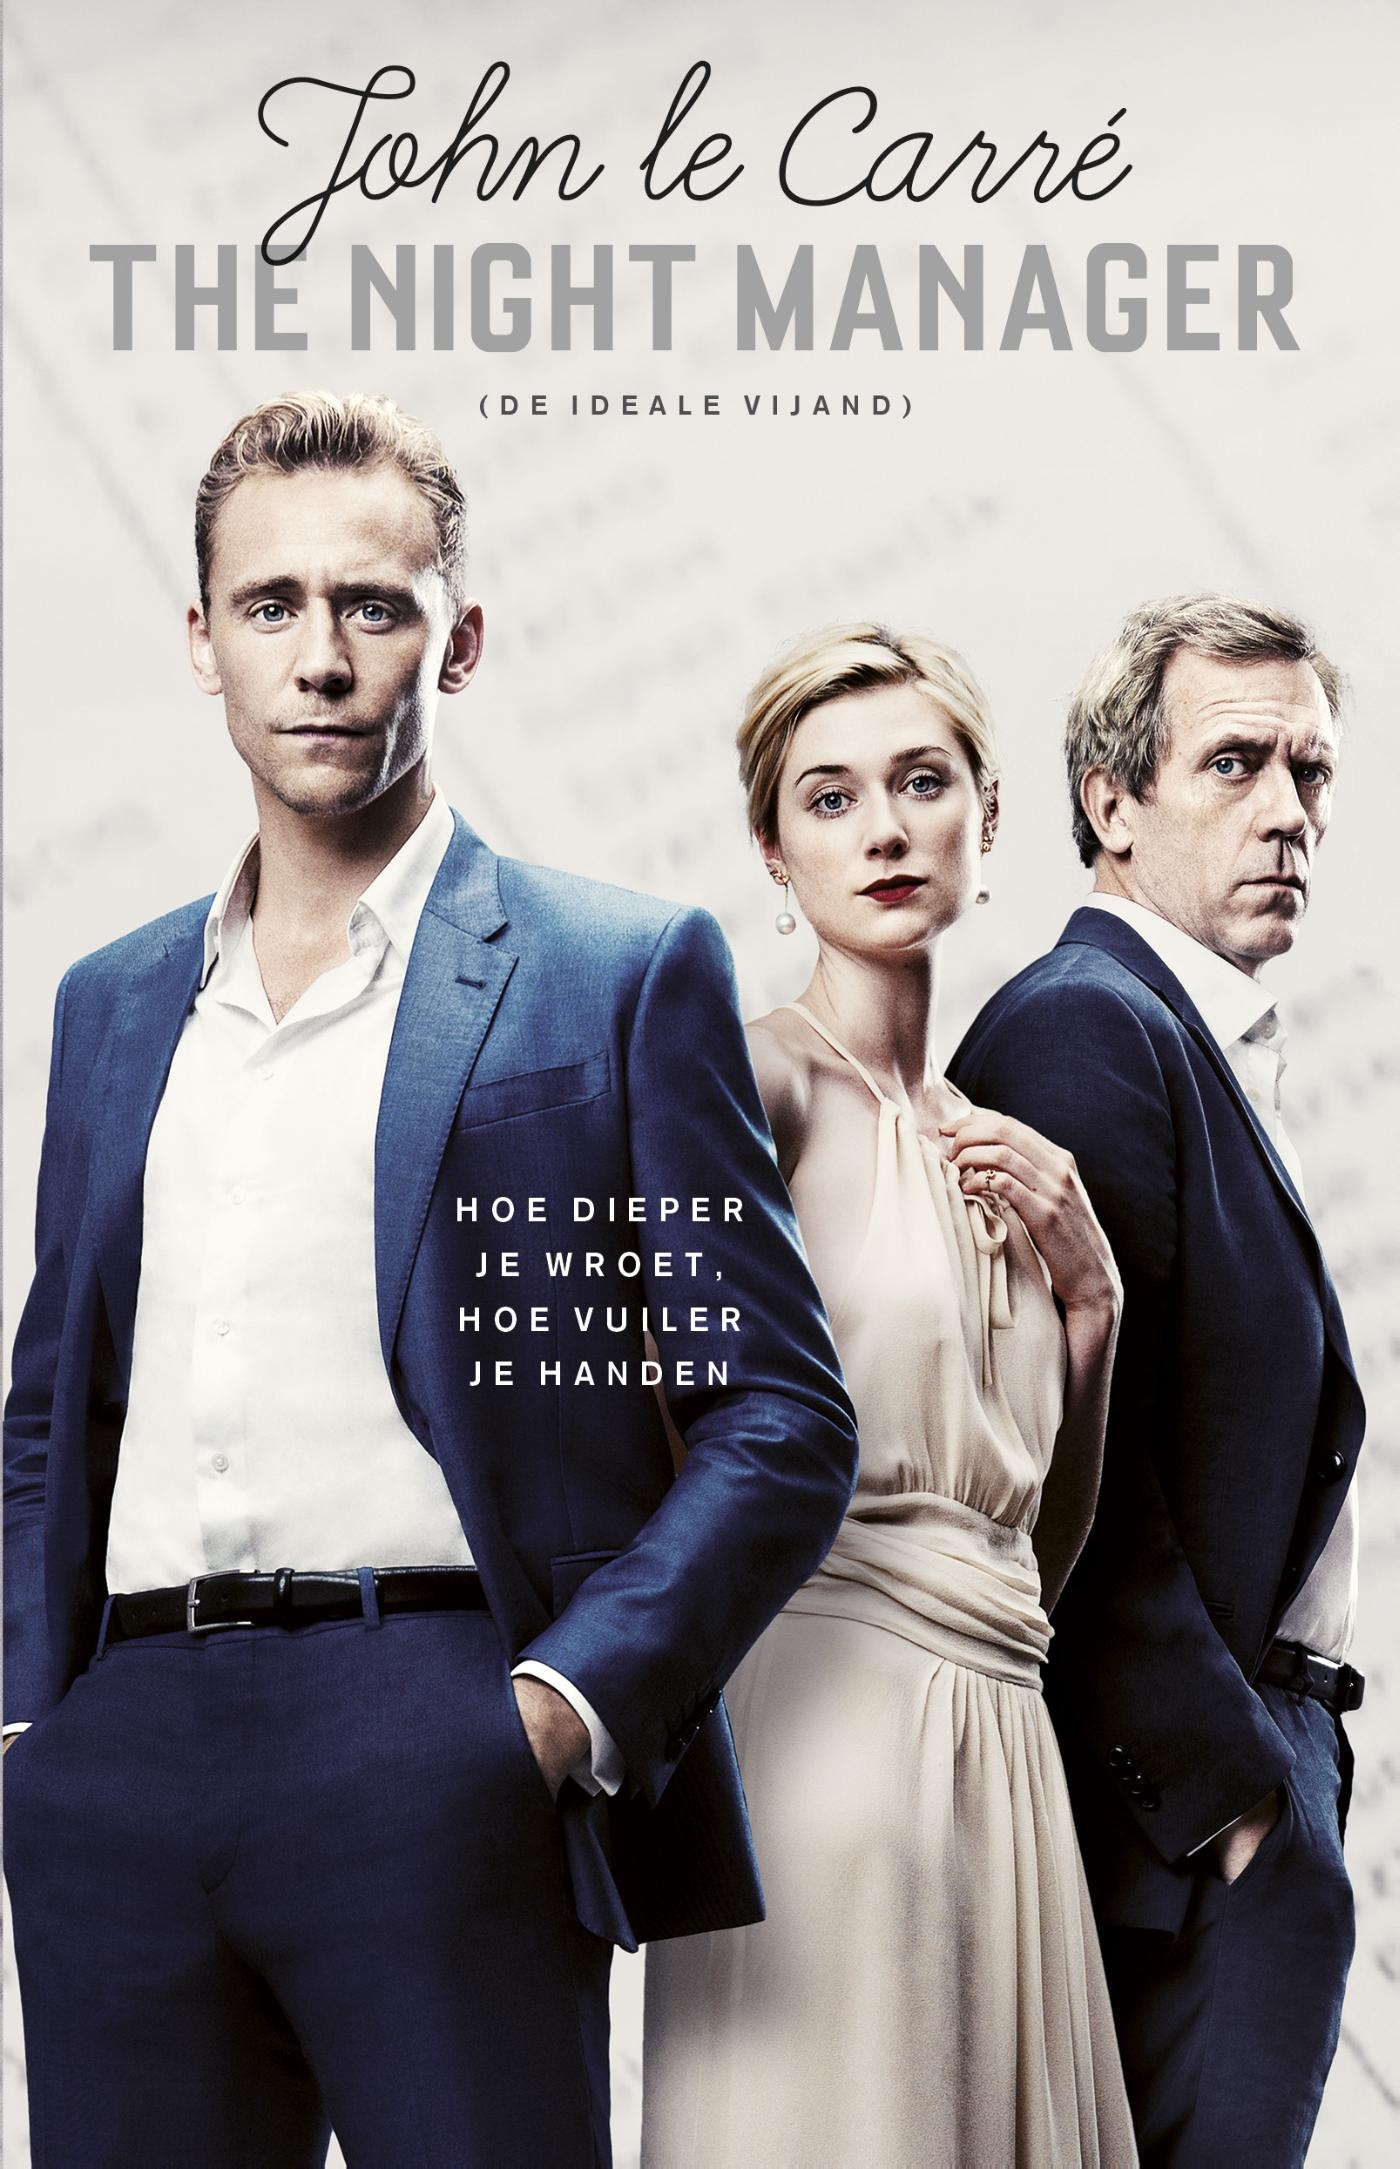 The Night Manager – John le Carré